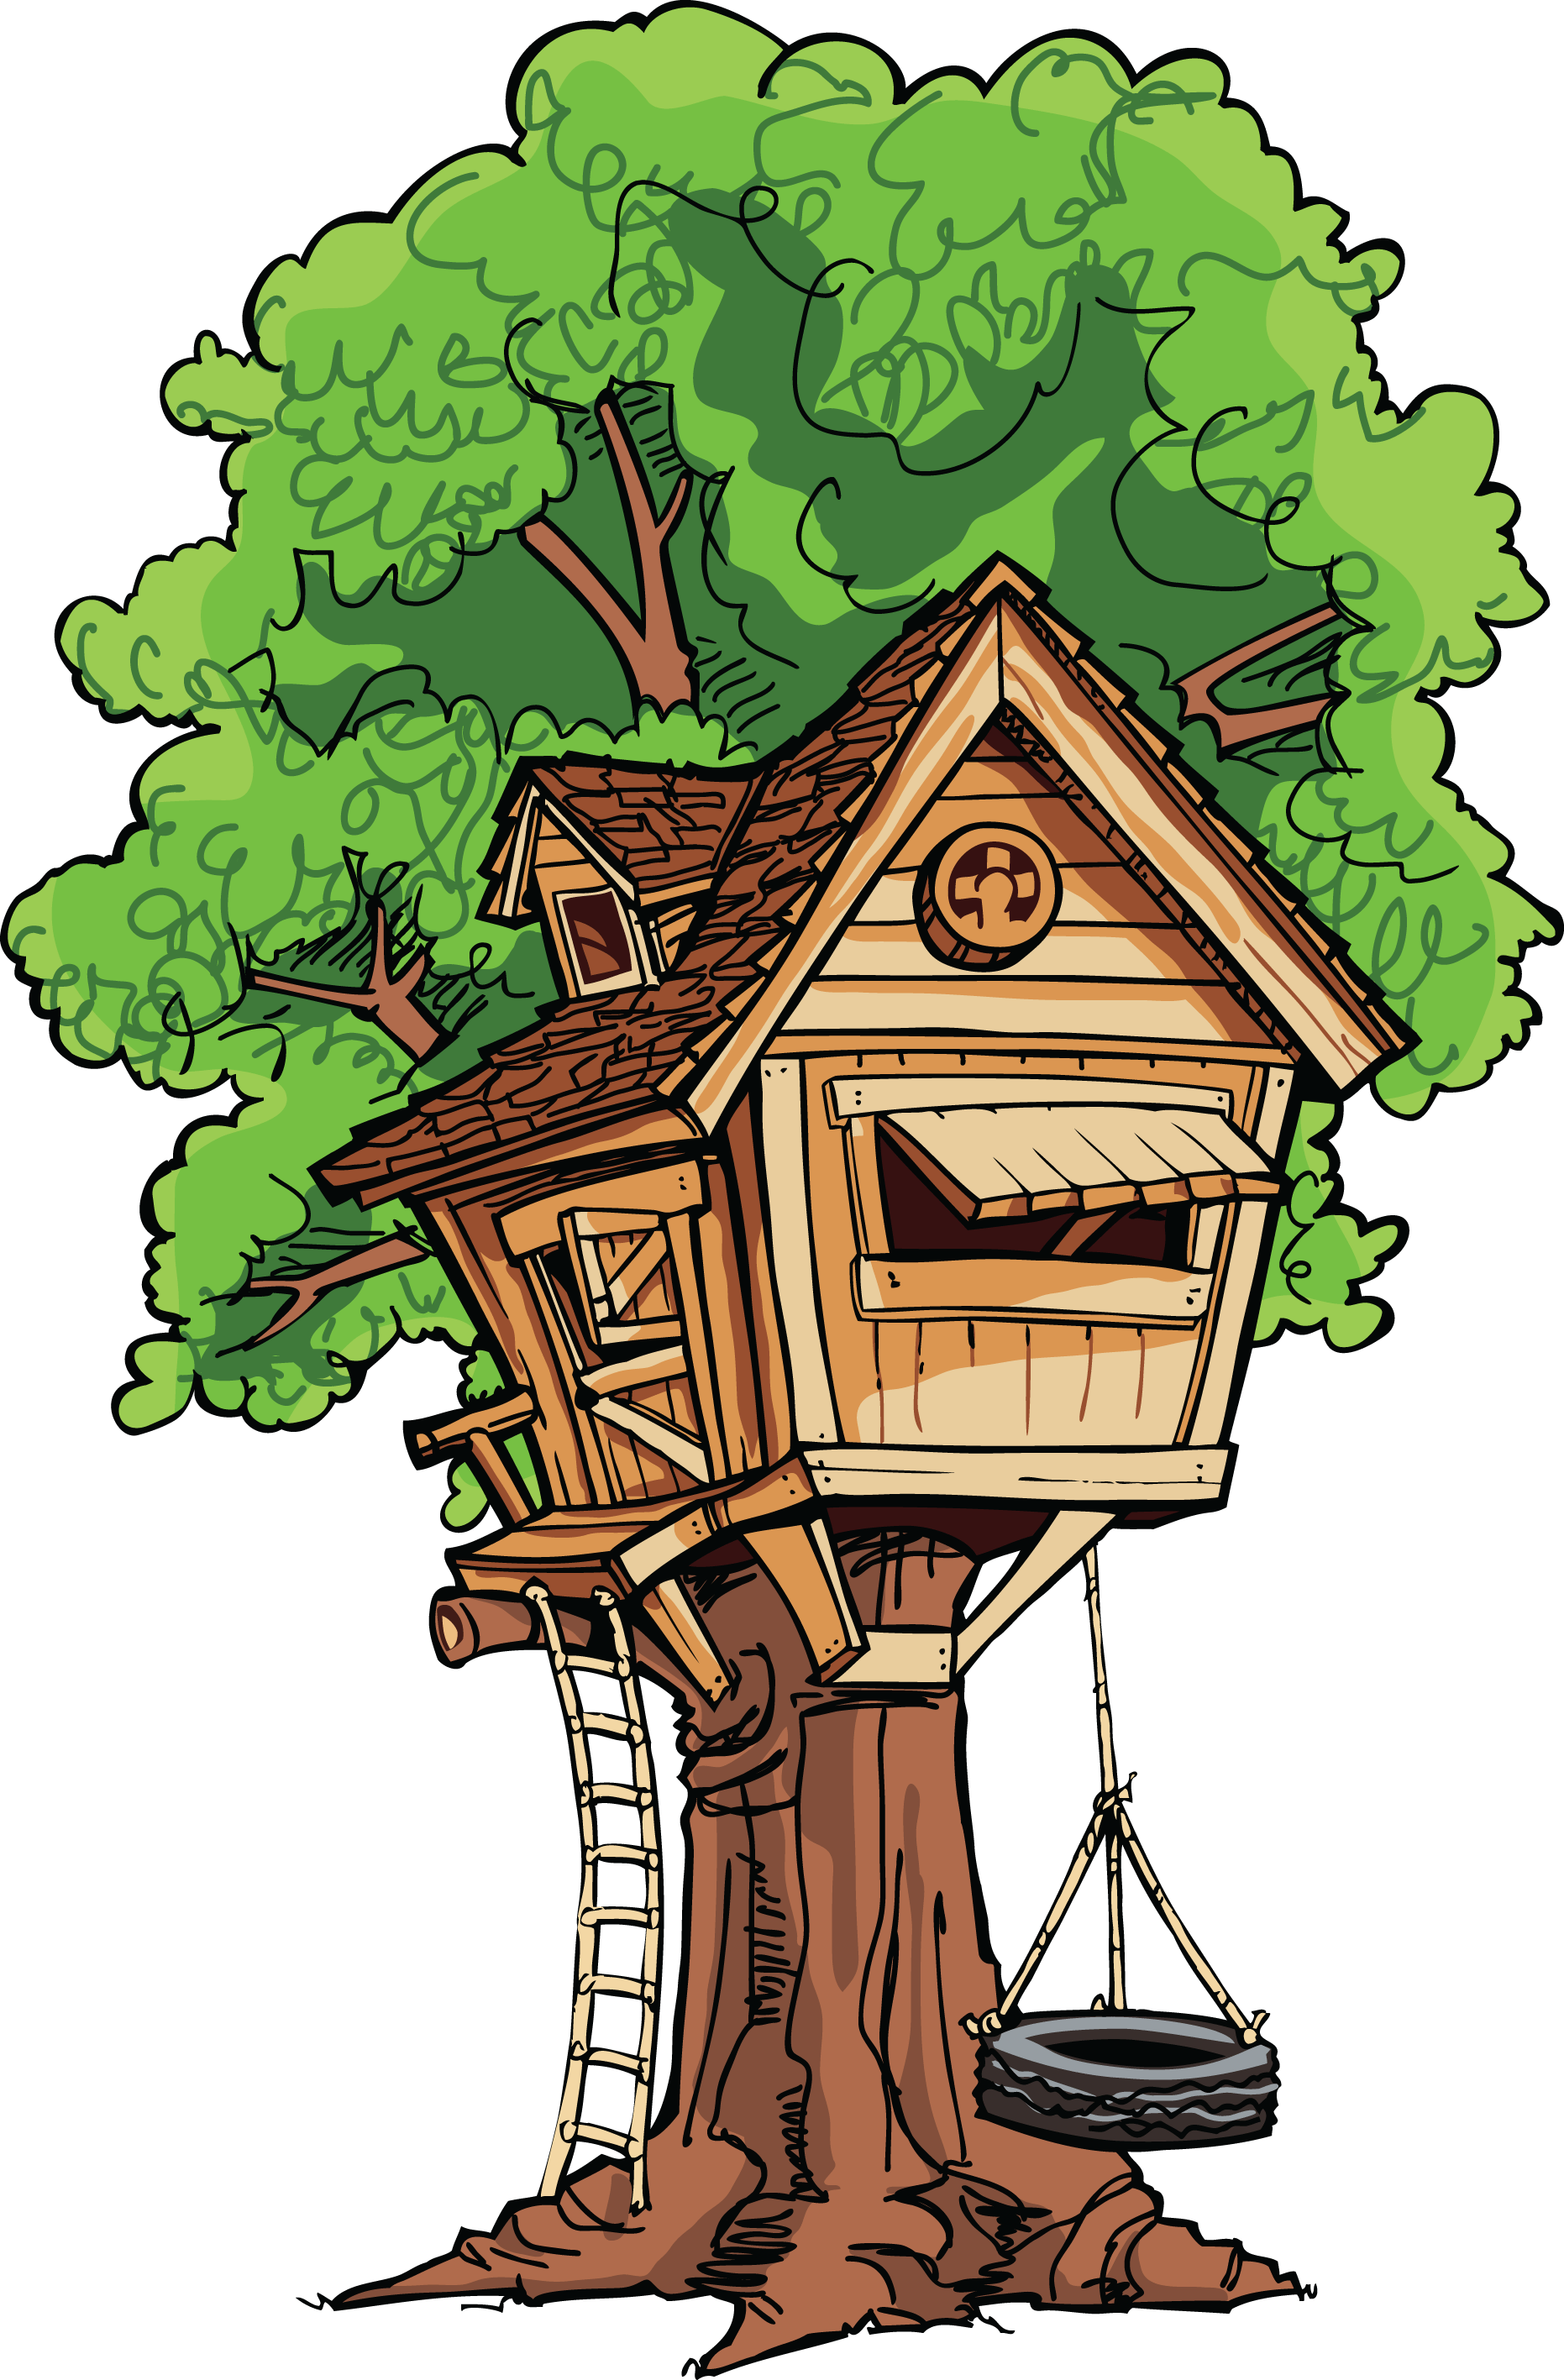 Large Treehouse Transparent Png Stickpng Use these free cartoon tree house png #66845 for your personal projects or designs. stickpng